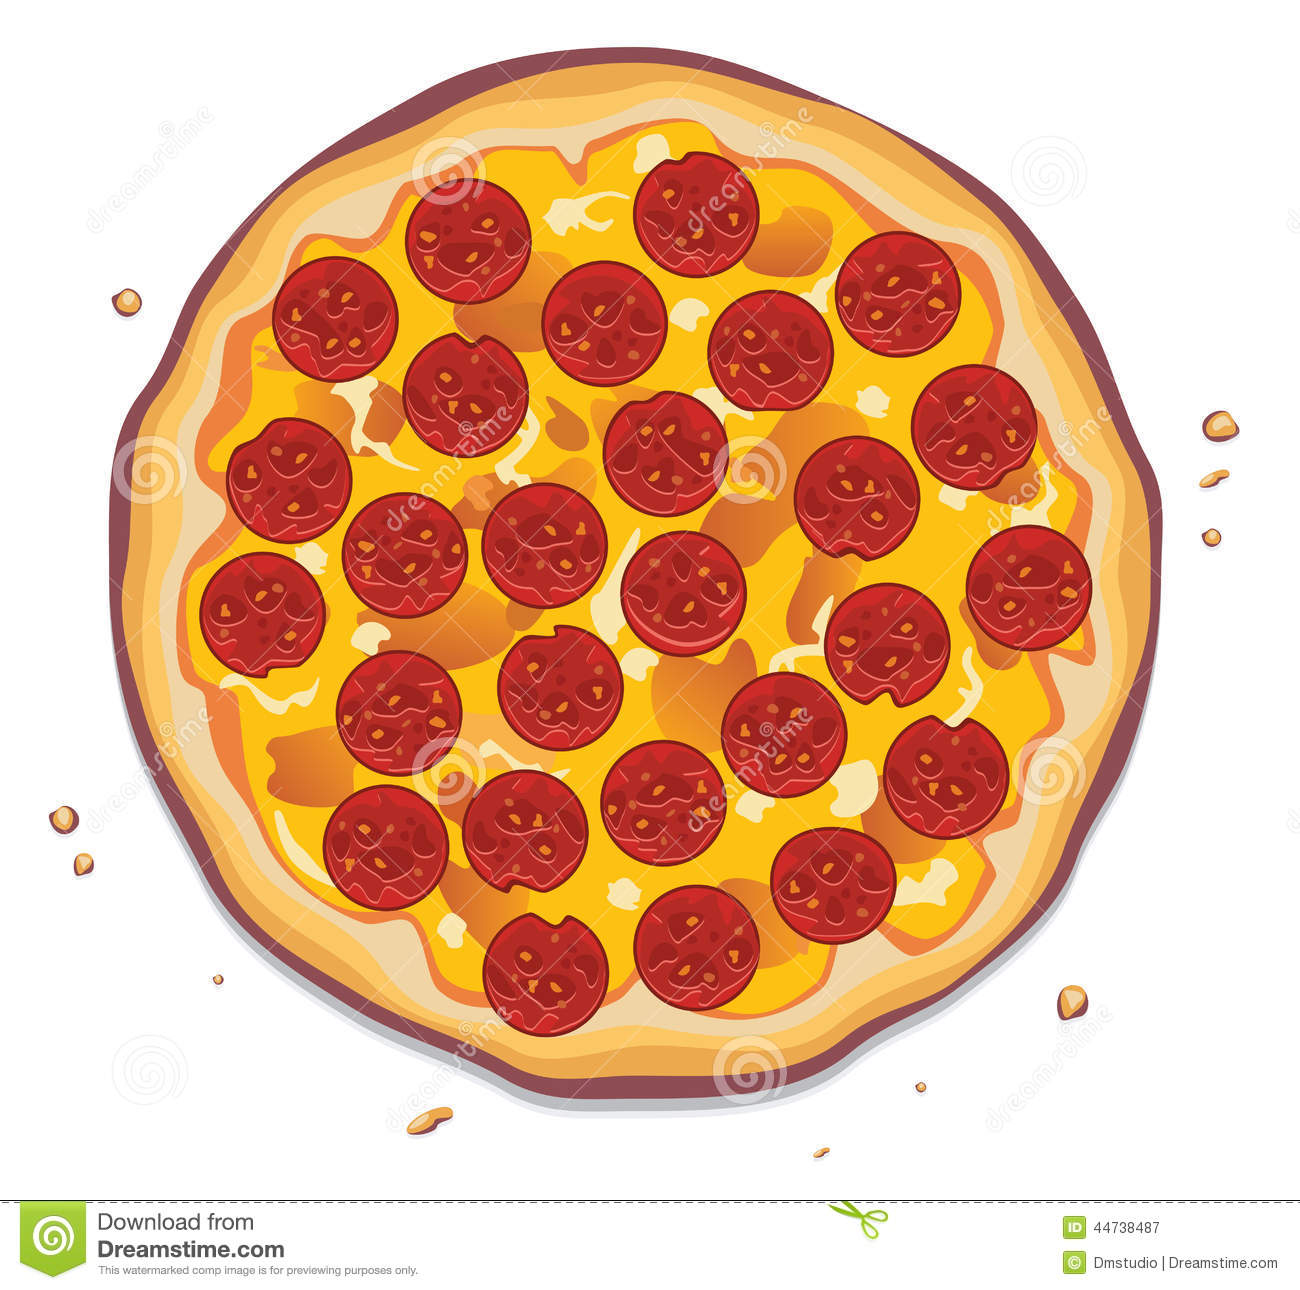 Pepperoni Pizza Slice Clipart.